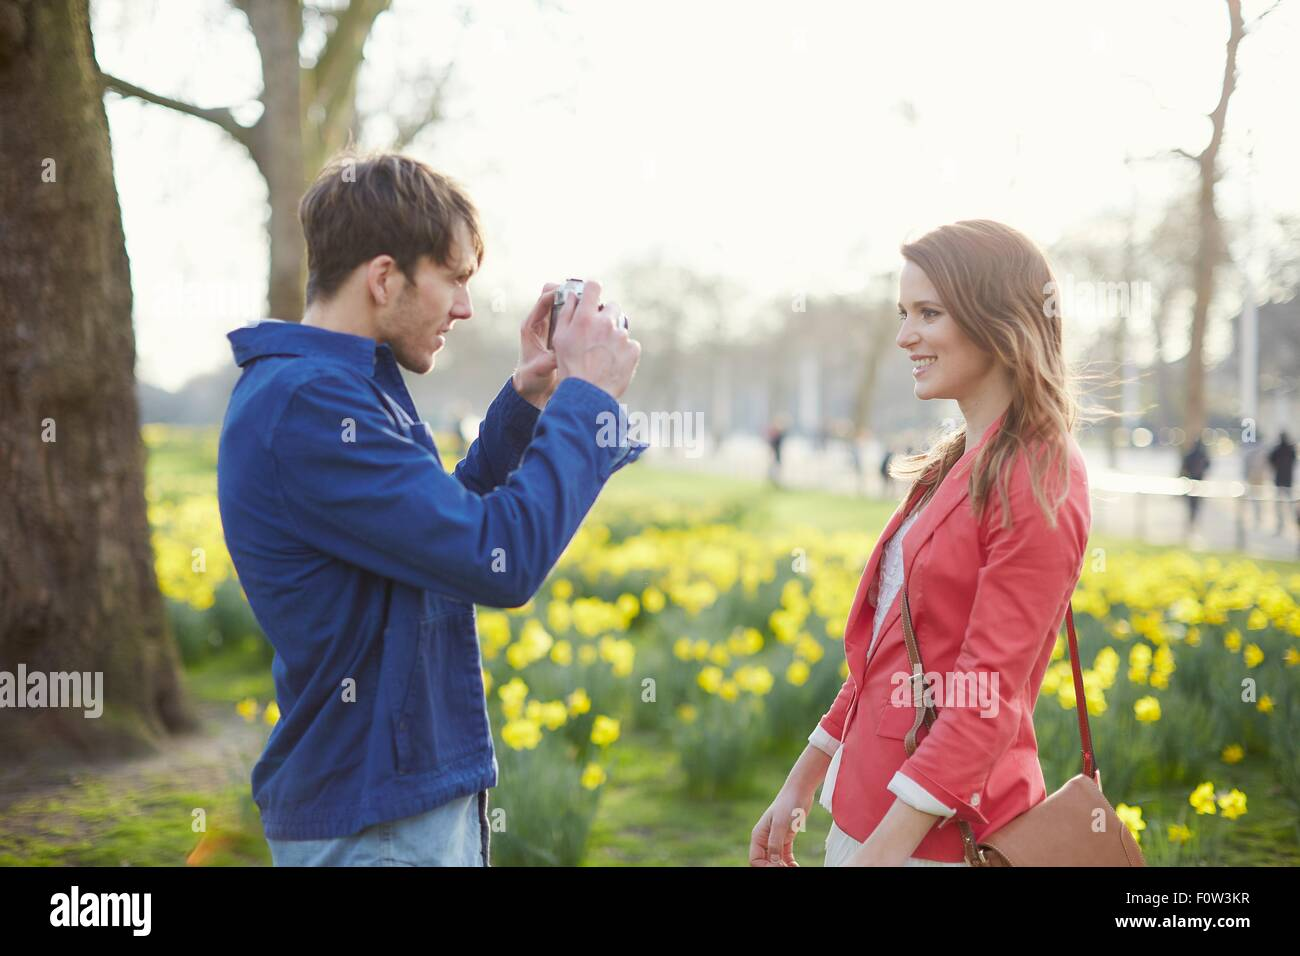 Mid adult man photographing girlfriend in park, London, UK Photo Stock